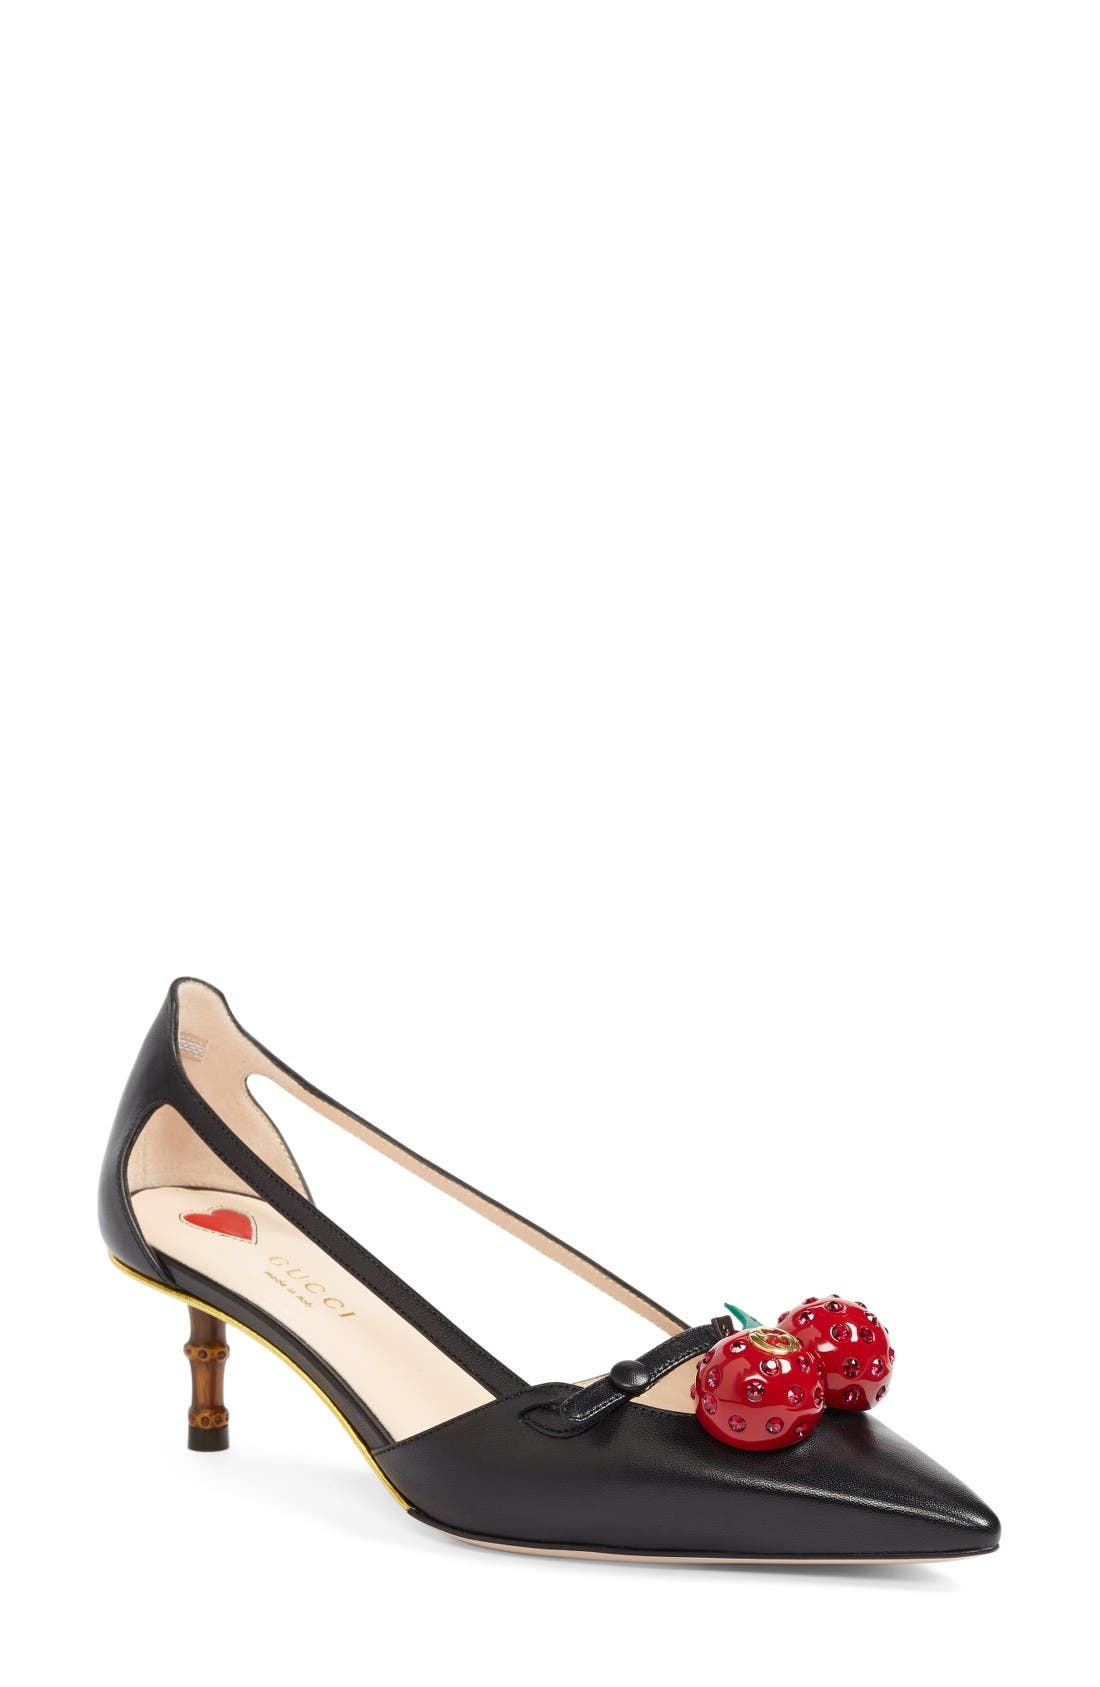 Alternate Image 1 Selected - Gucci Unia Cherry Pump (Women)